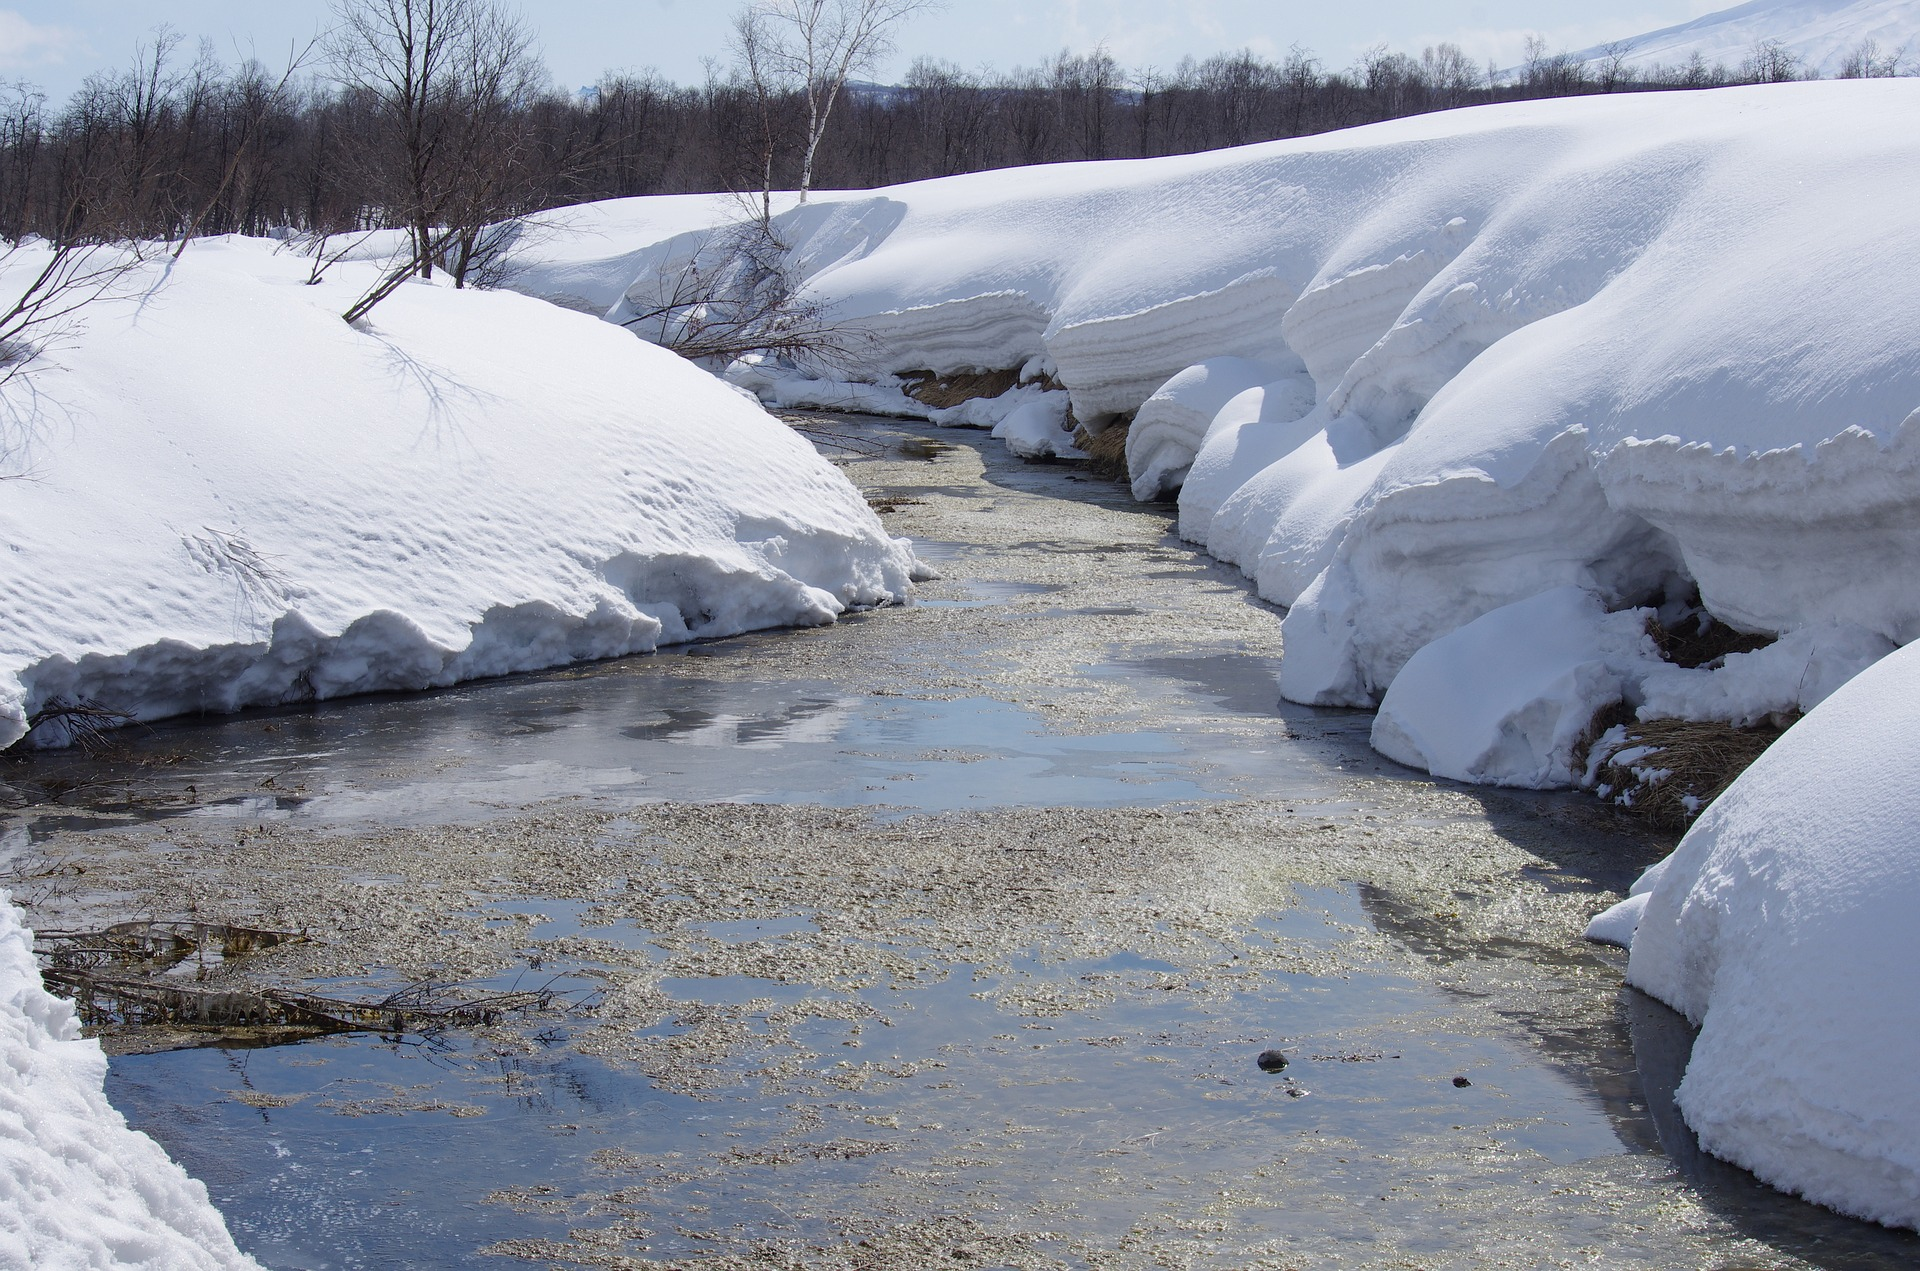 Flood watch issued by Kawartha Conservation with insistent rain, melting